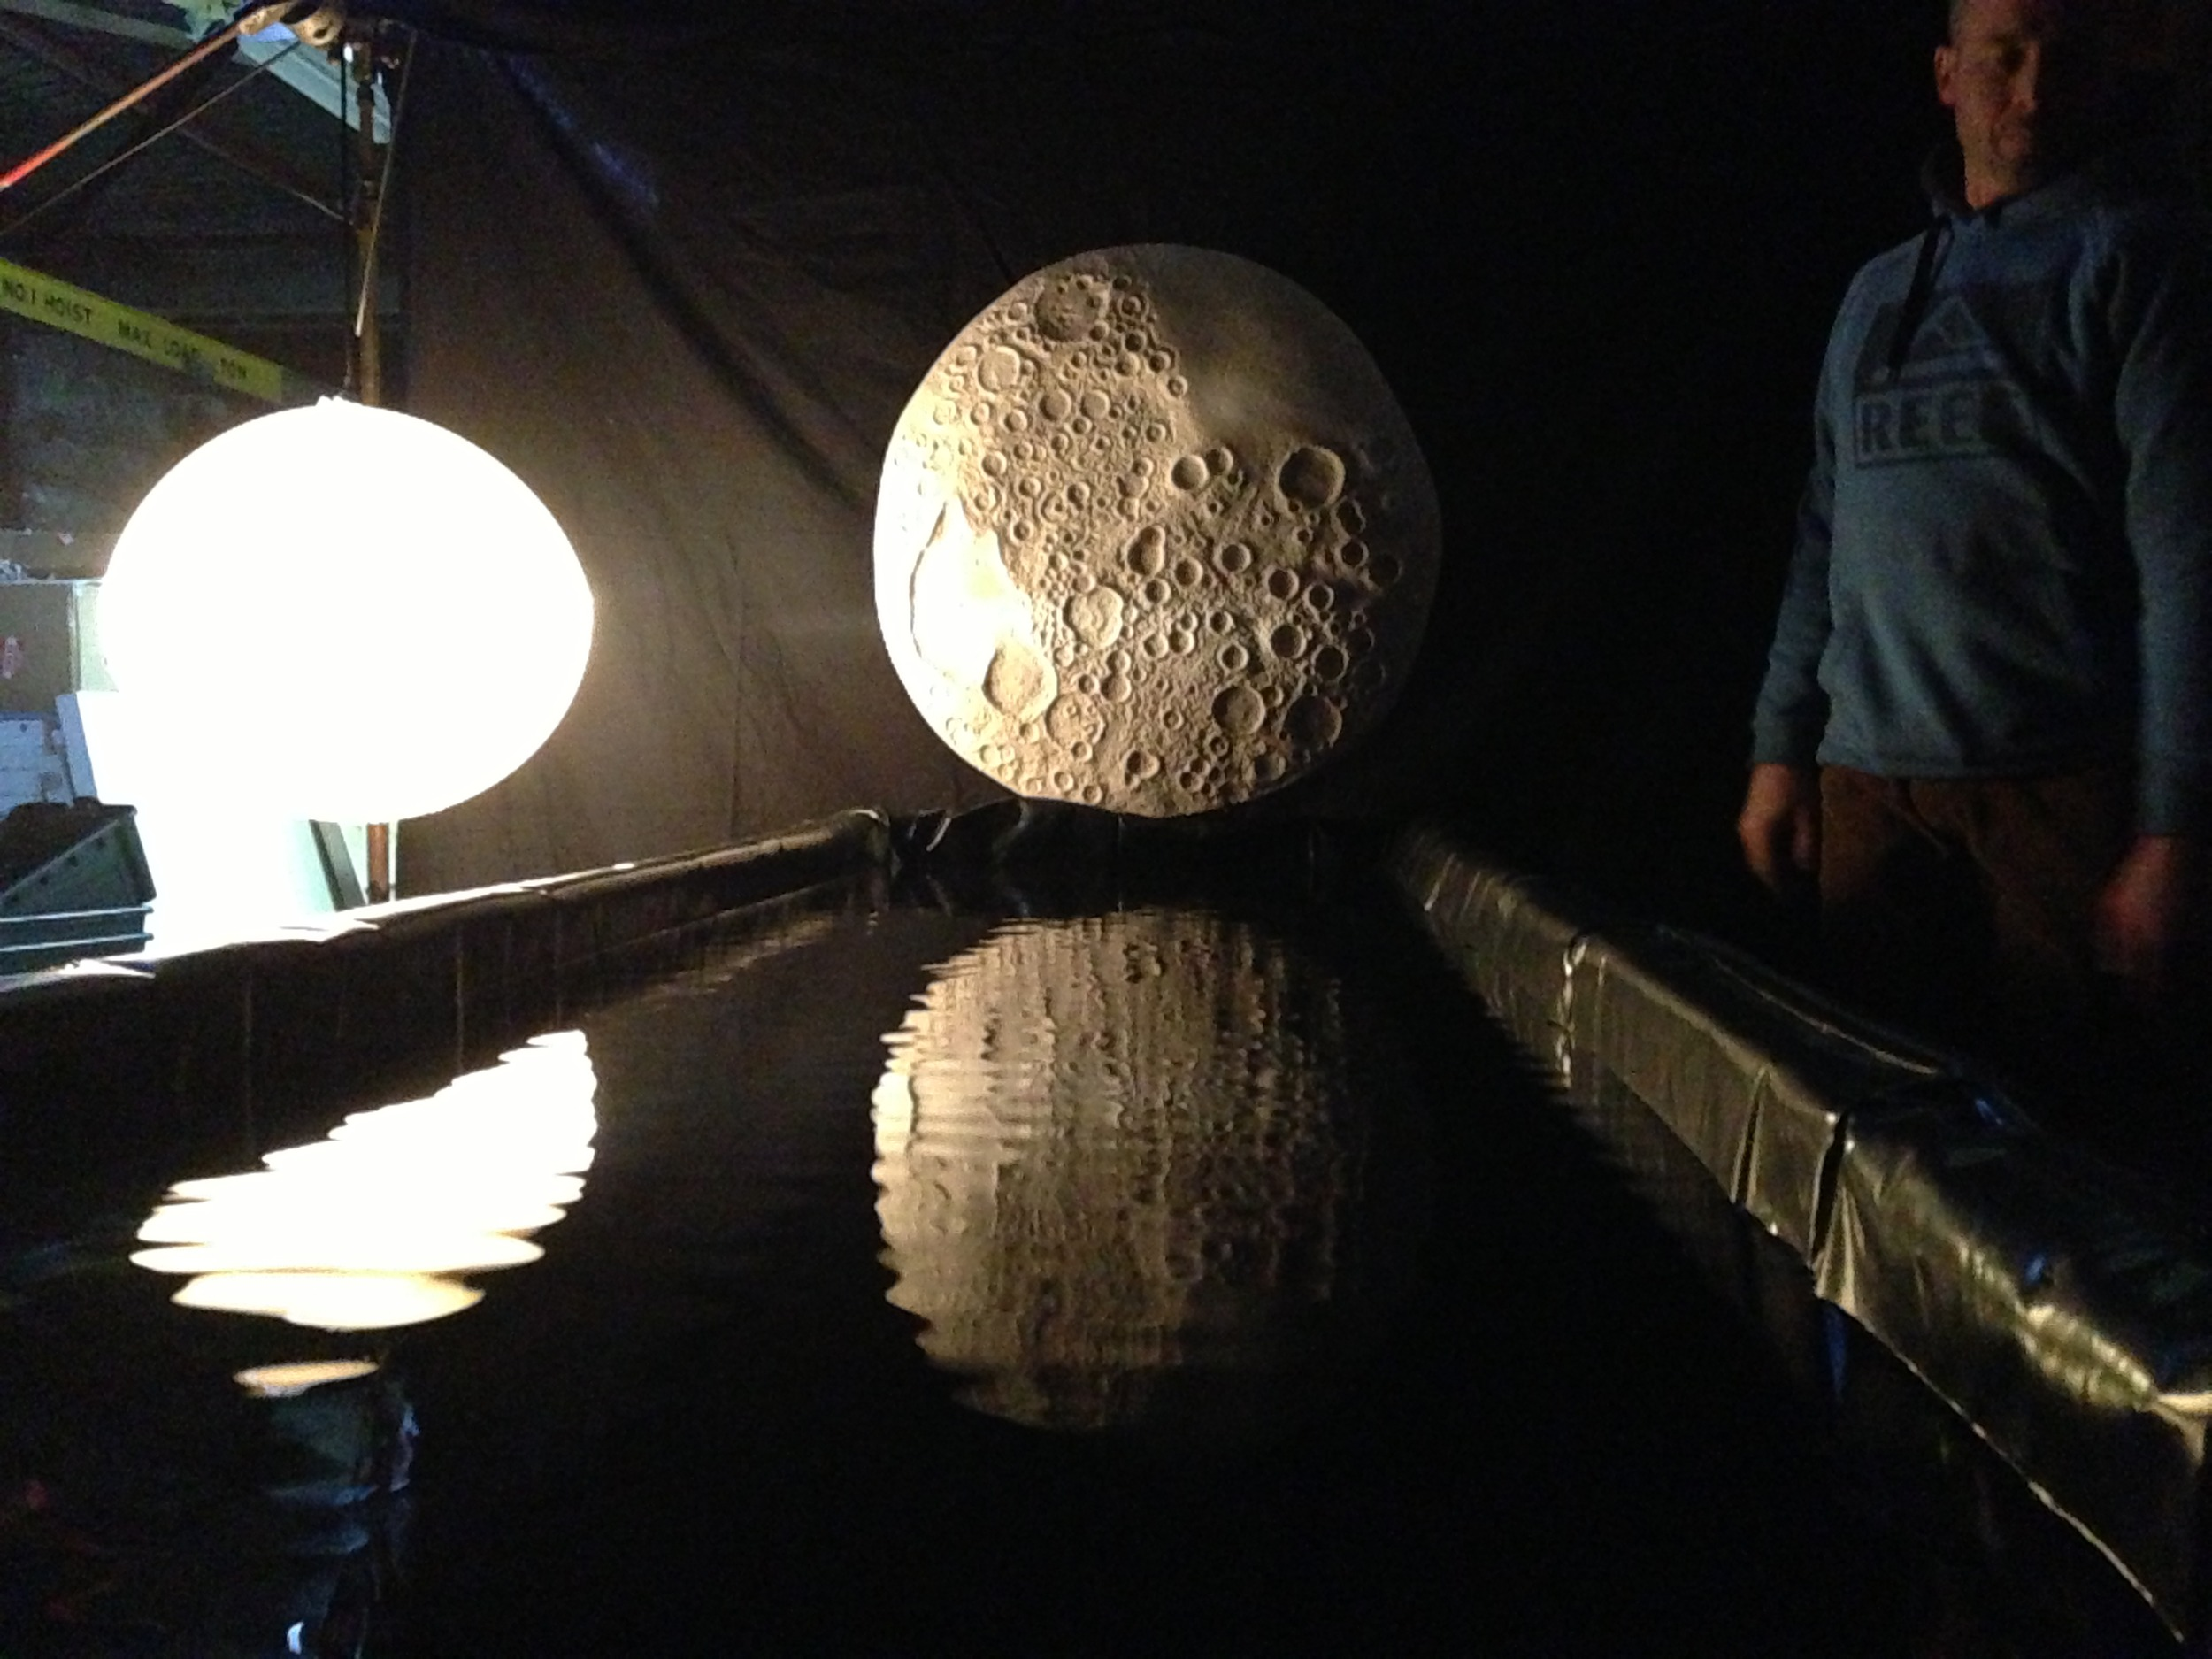 1/4 scale lighting, water and reflection test